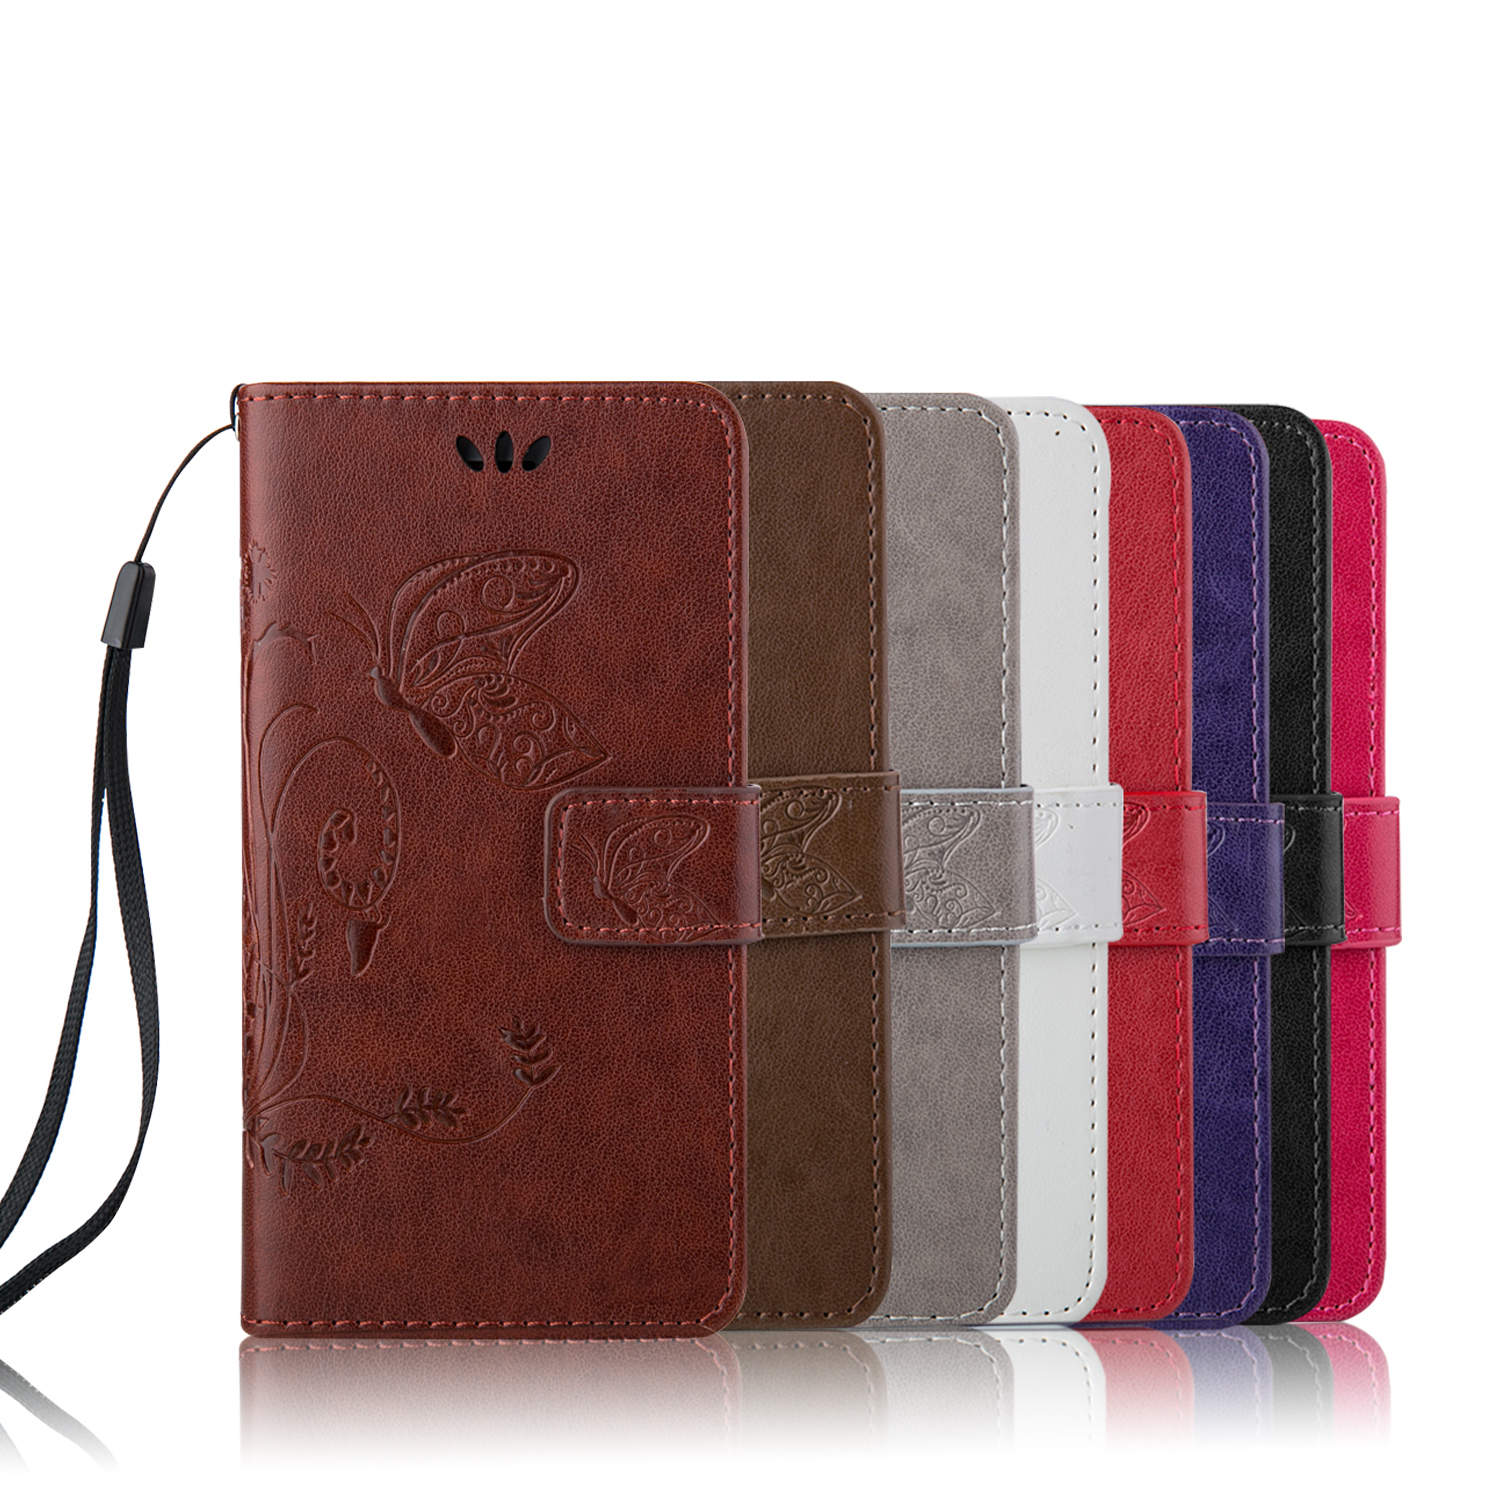 Fashion Book Cover Zip : Wallet cases luxury book style pu leather flip case cover